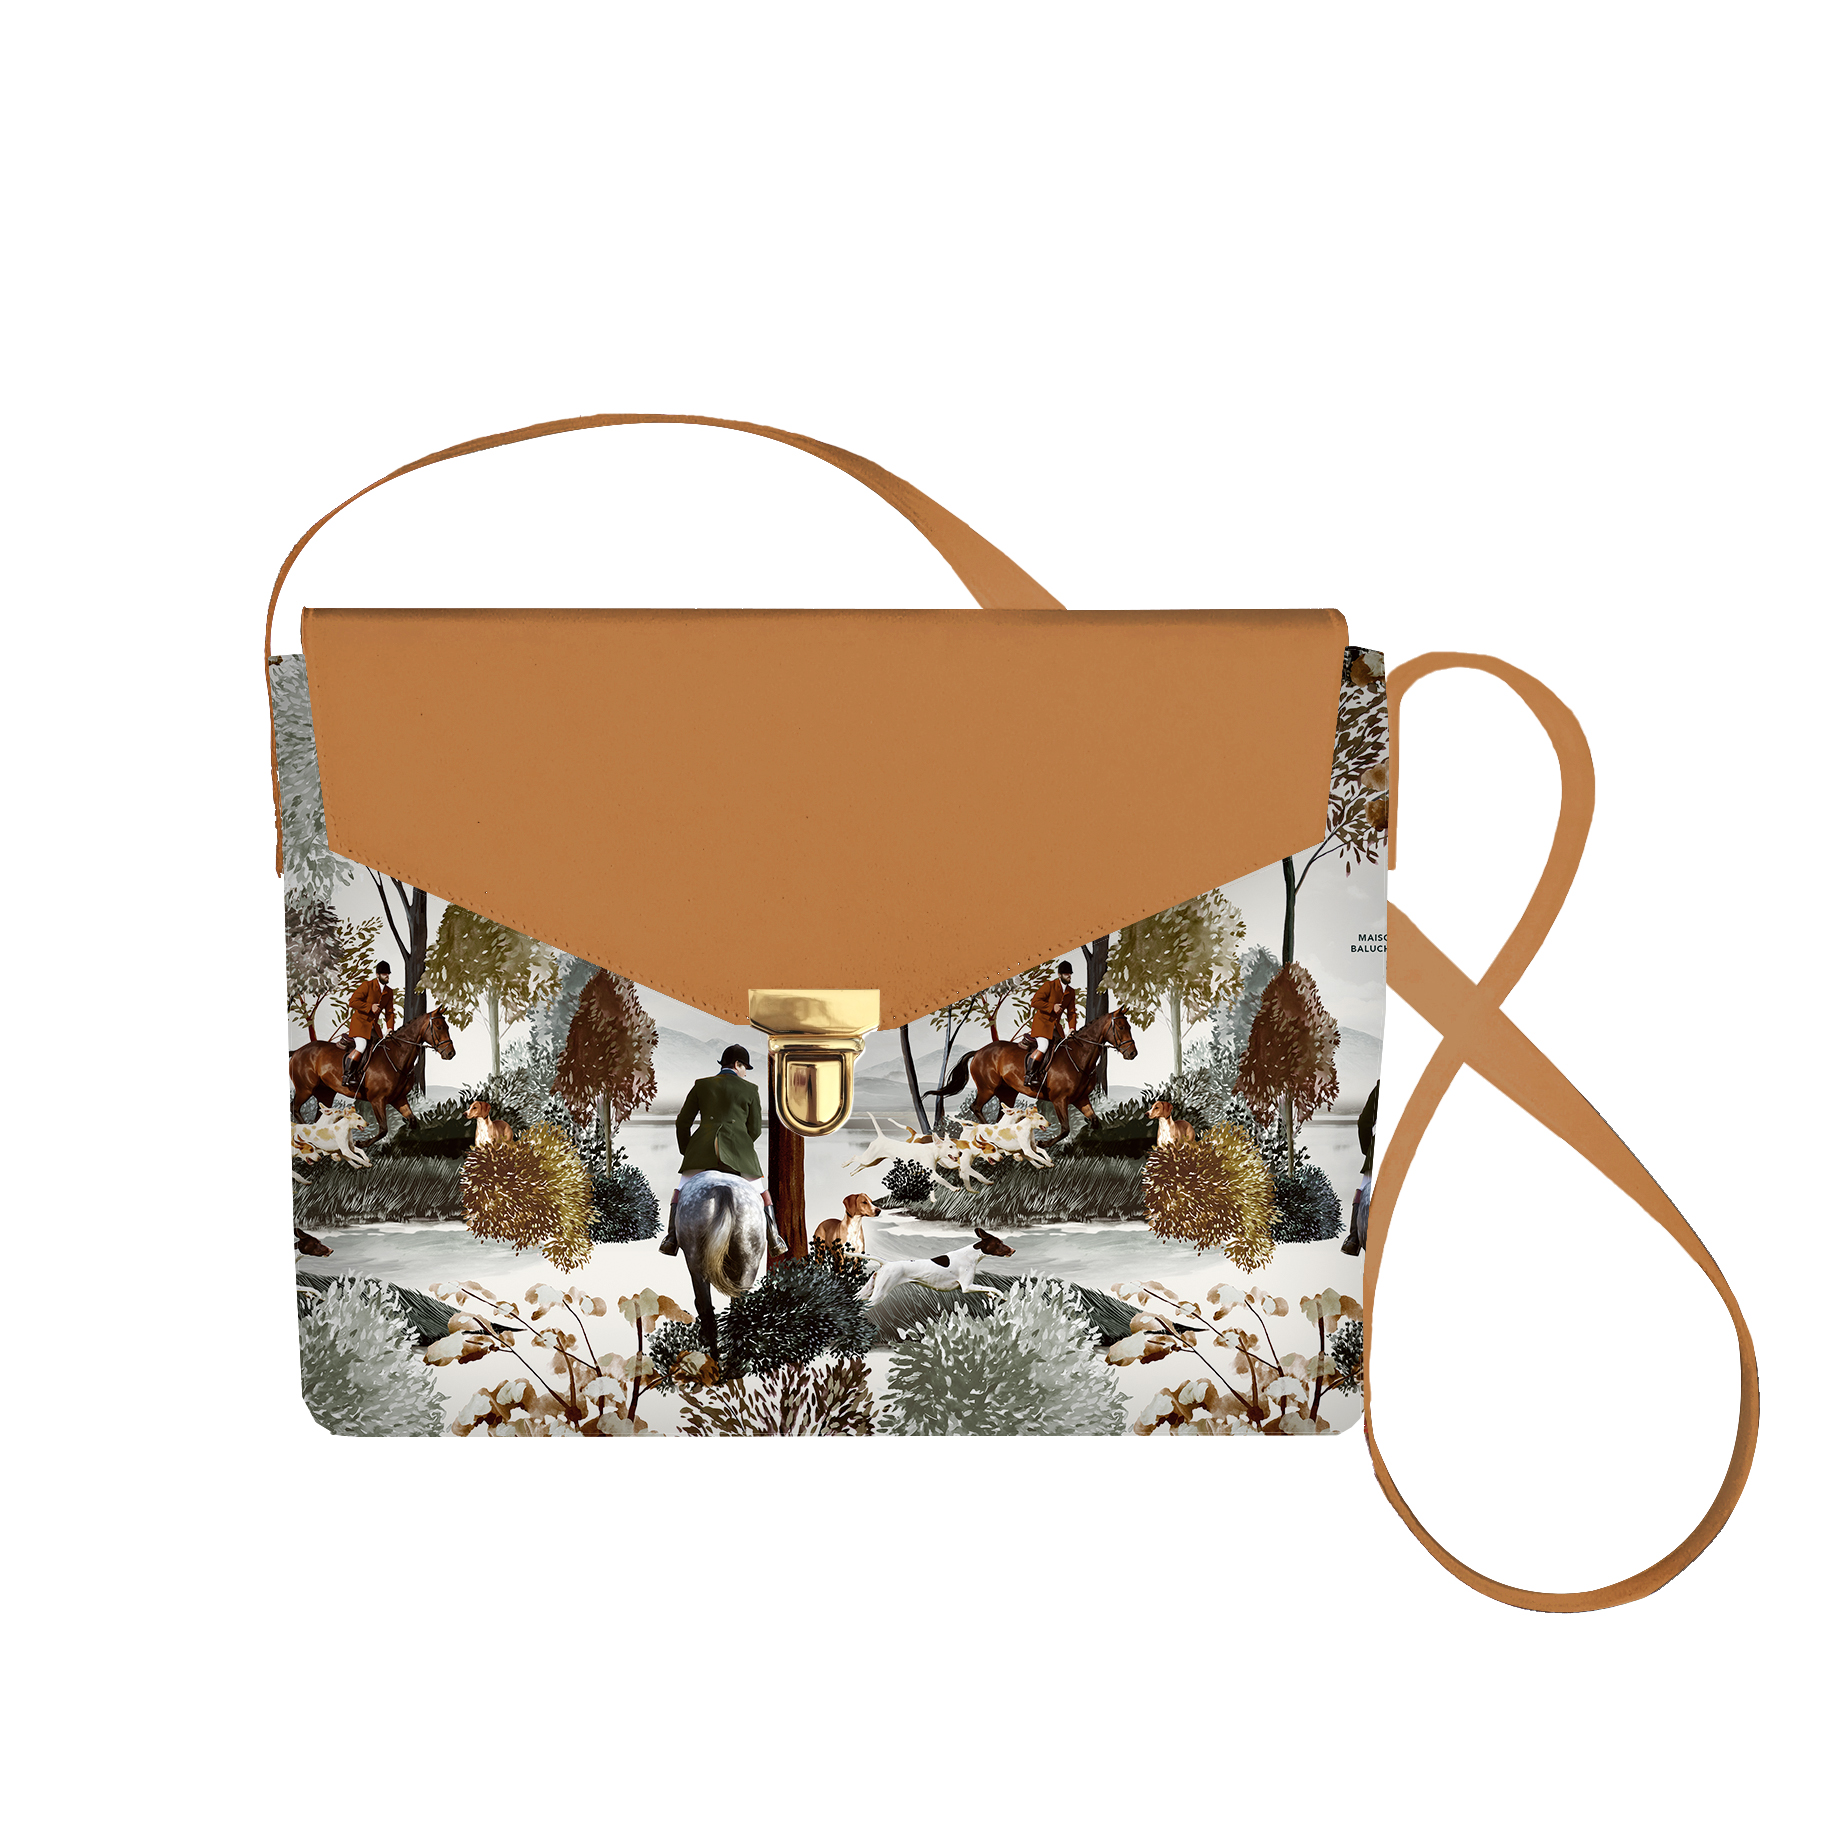 purse-foret24-camel